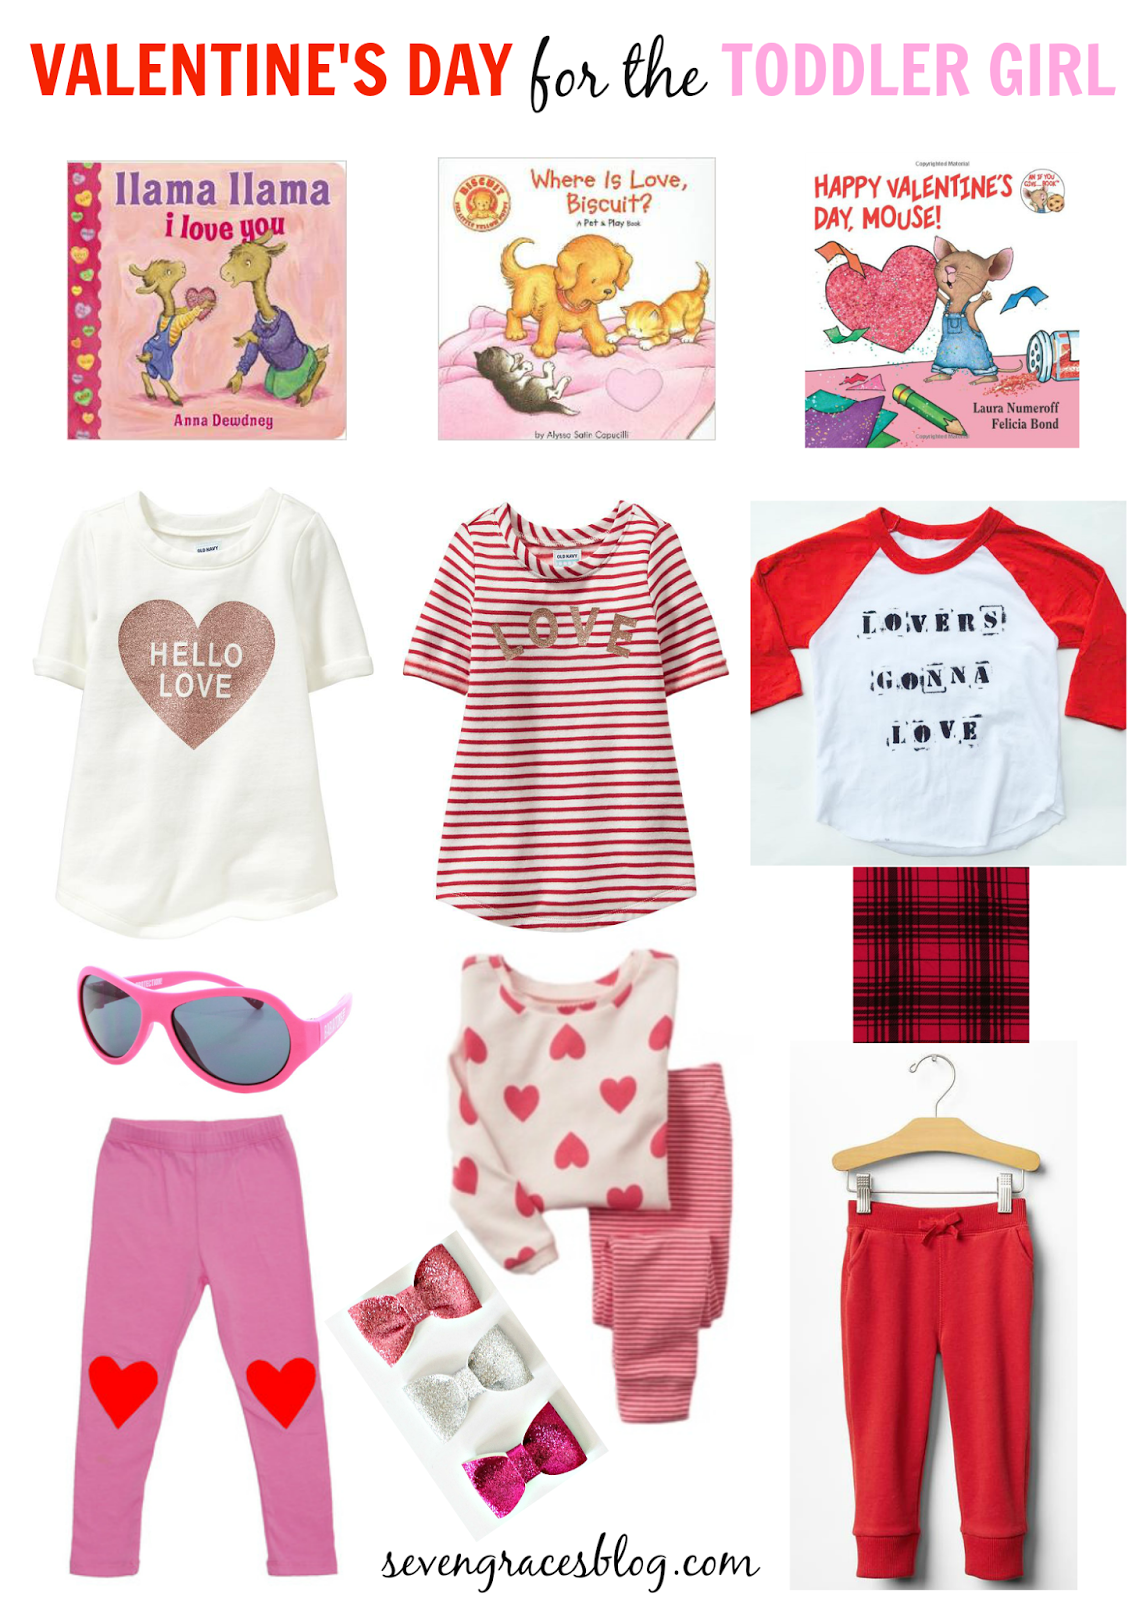 Valentine 39 s day gift ideas for the toddler girl seven graces for Valentines day trip ideas